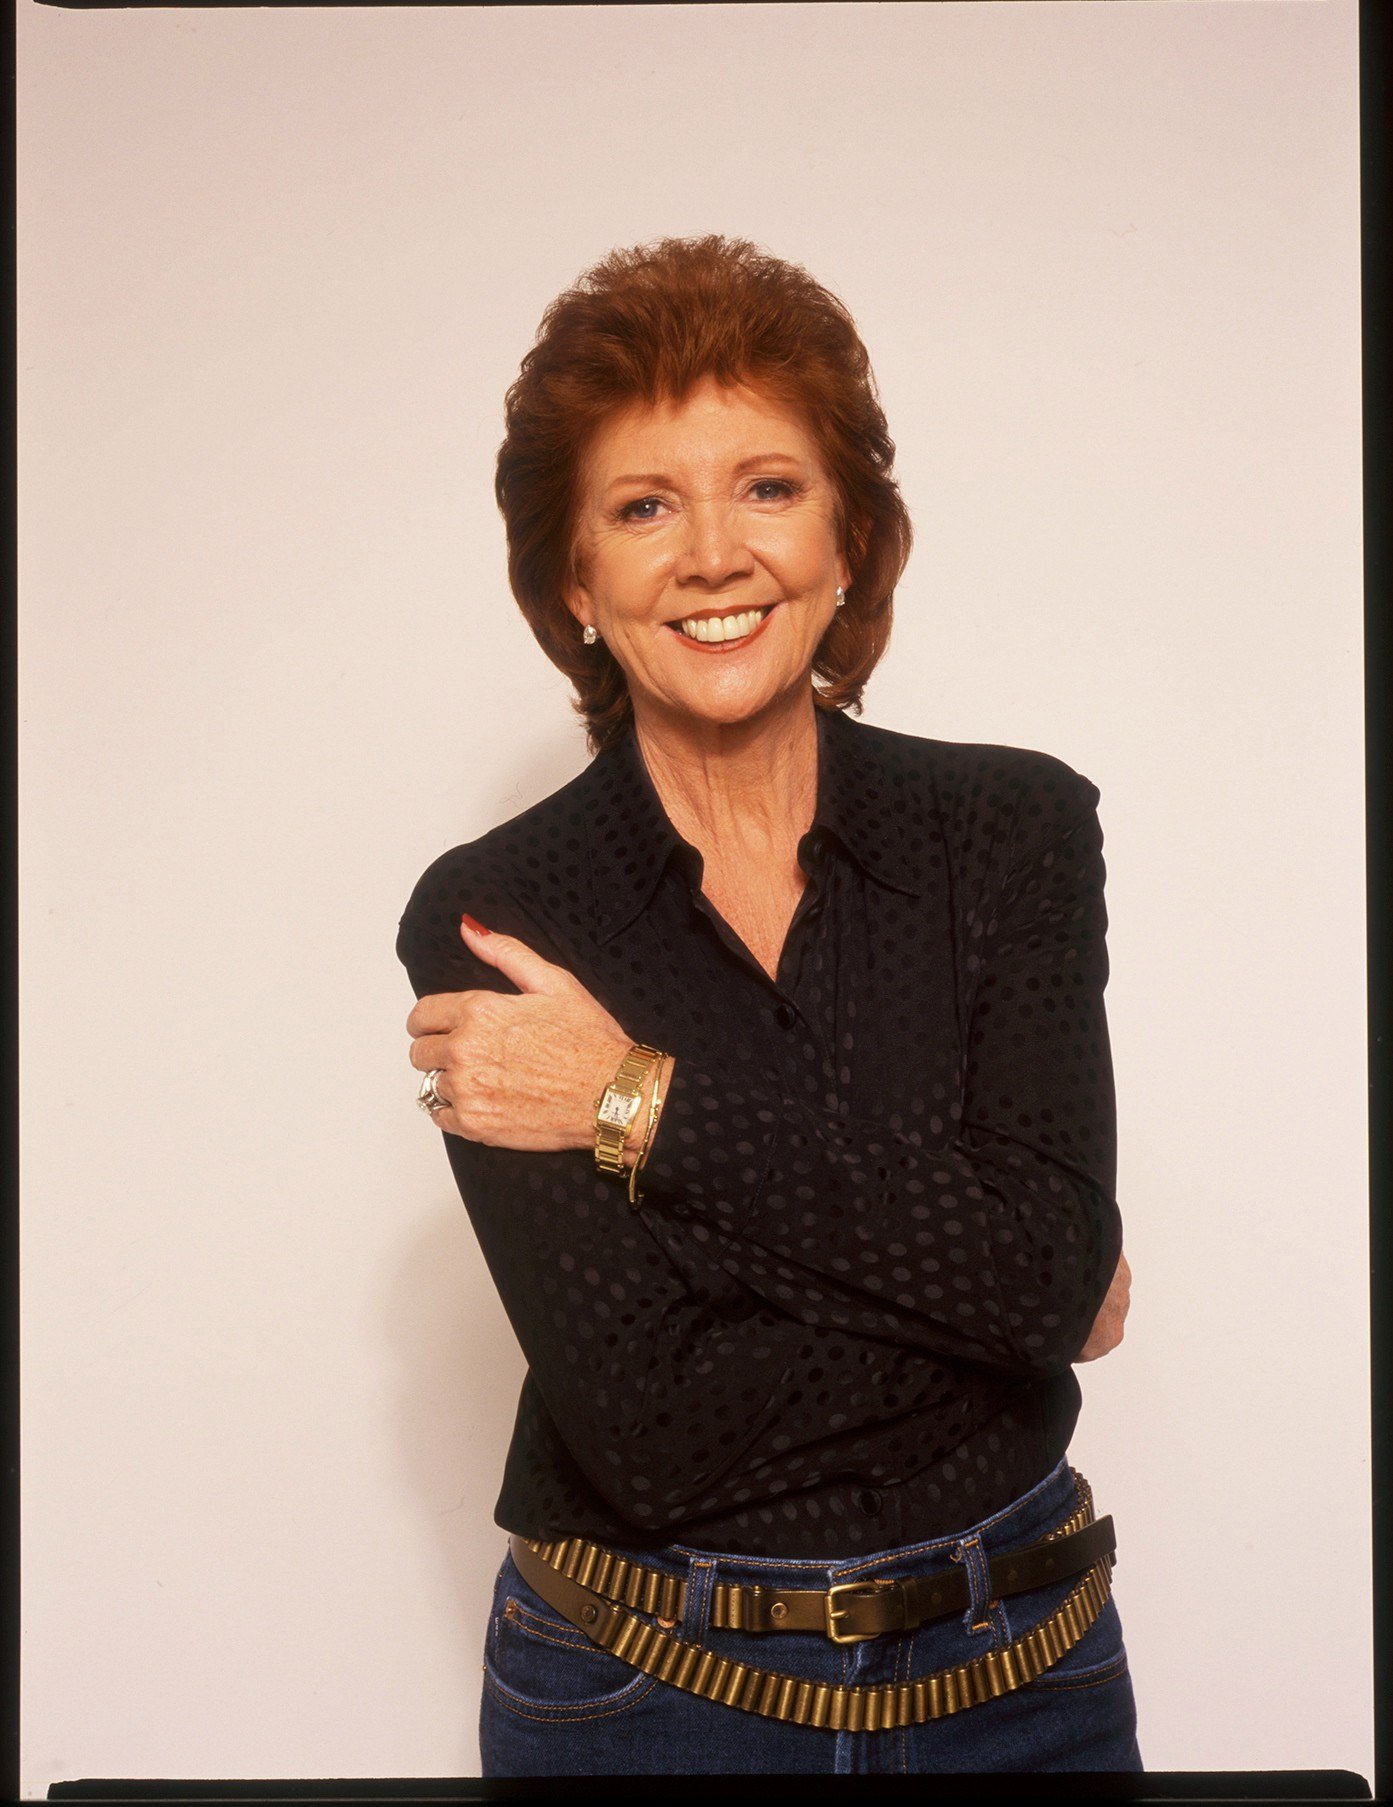 Who was Cilla Black, when did she host Blind Date and how can I see Cilla The Musical?